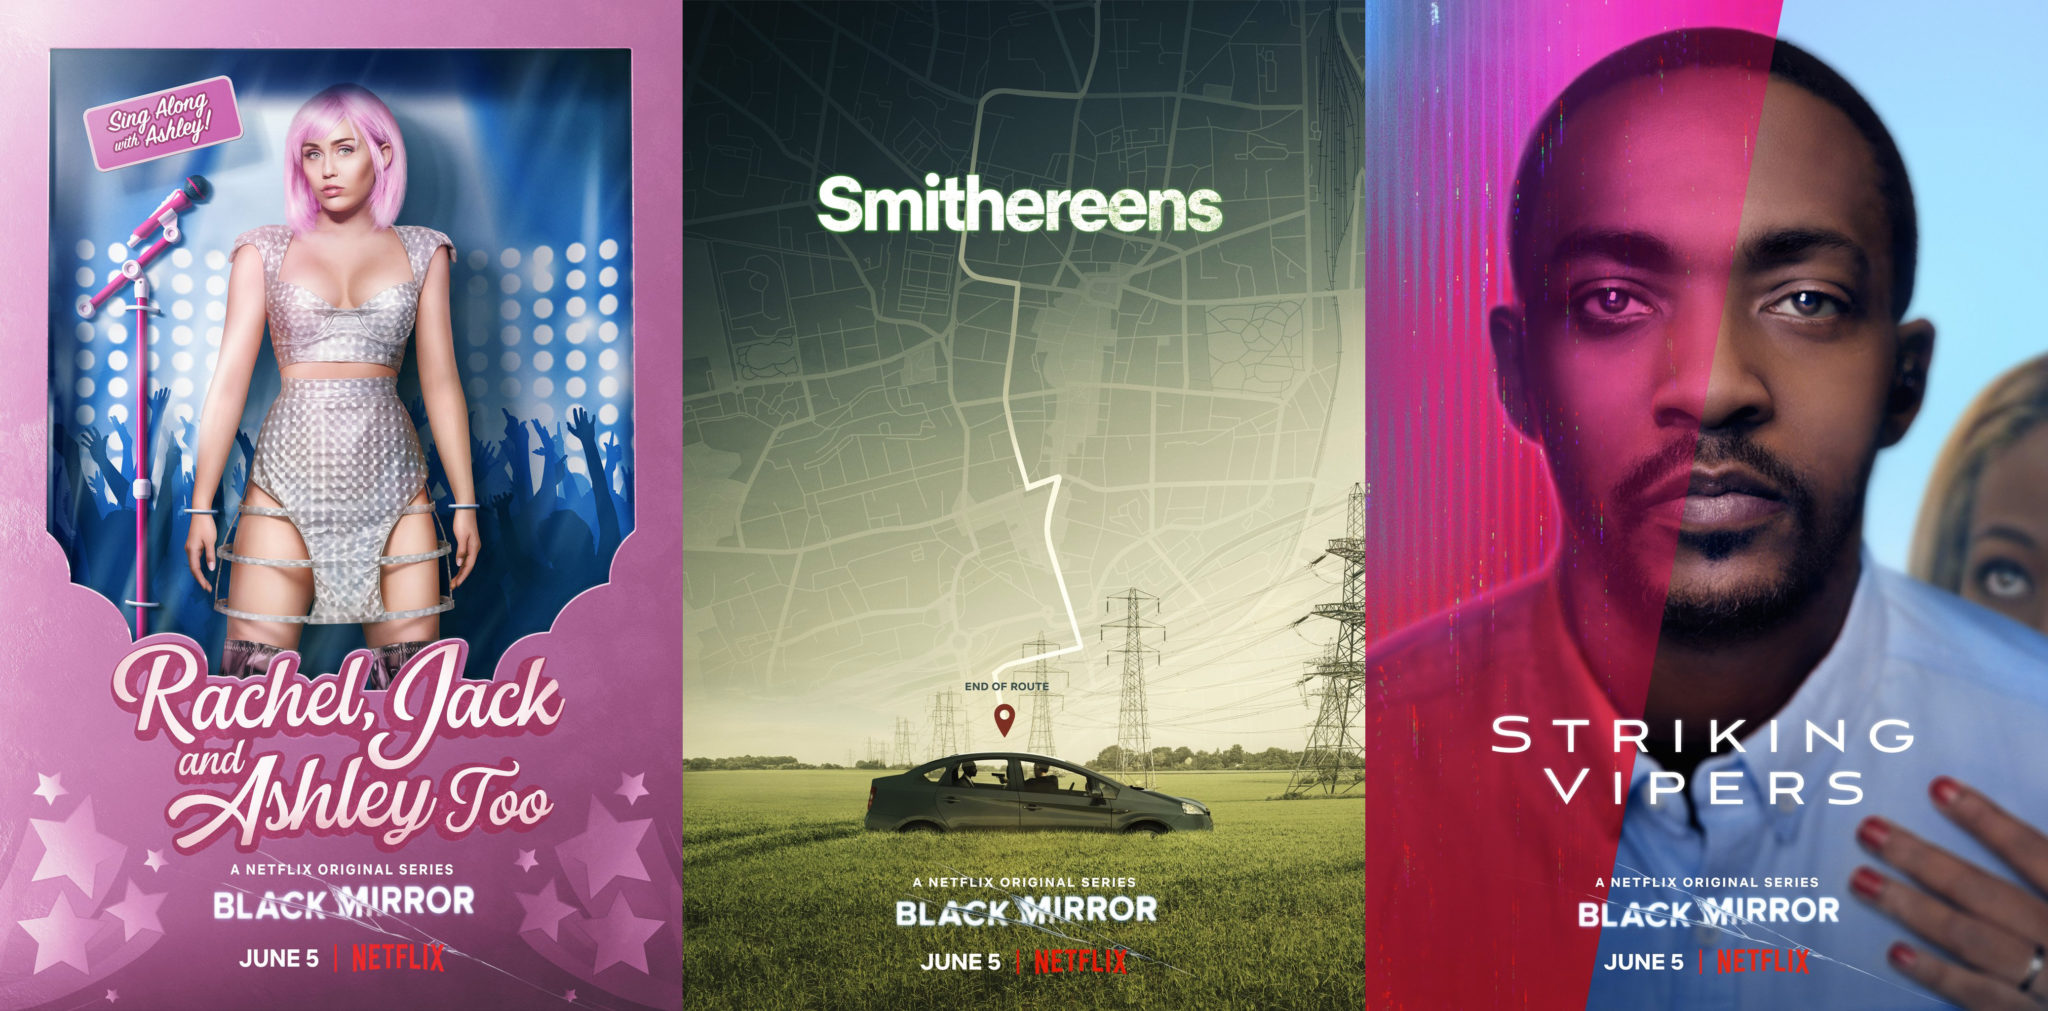 Netflix's Black Mirror season 5 called out to be a mess